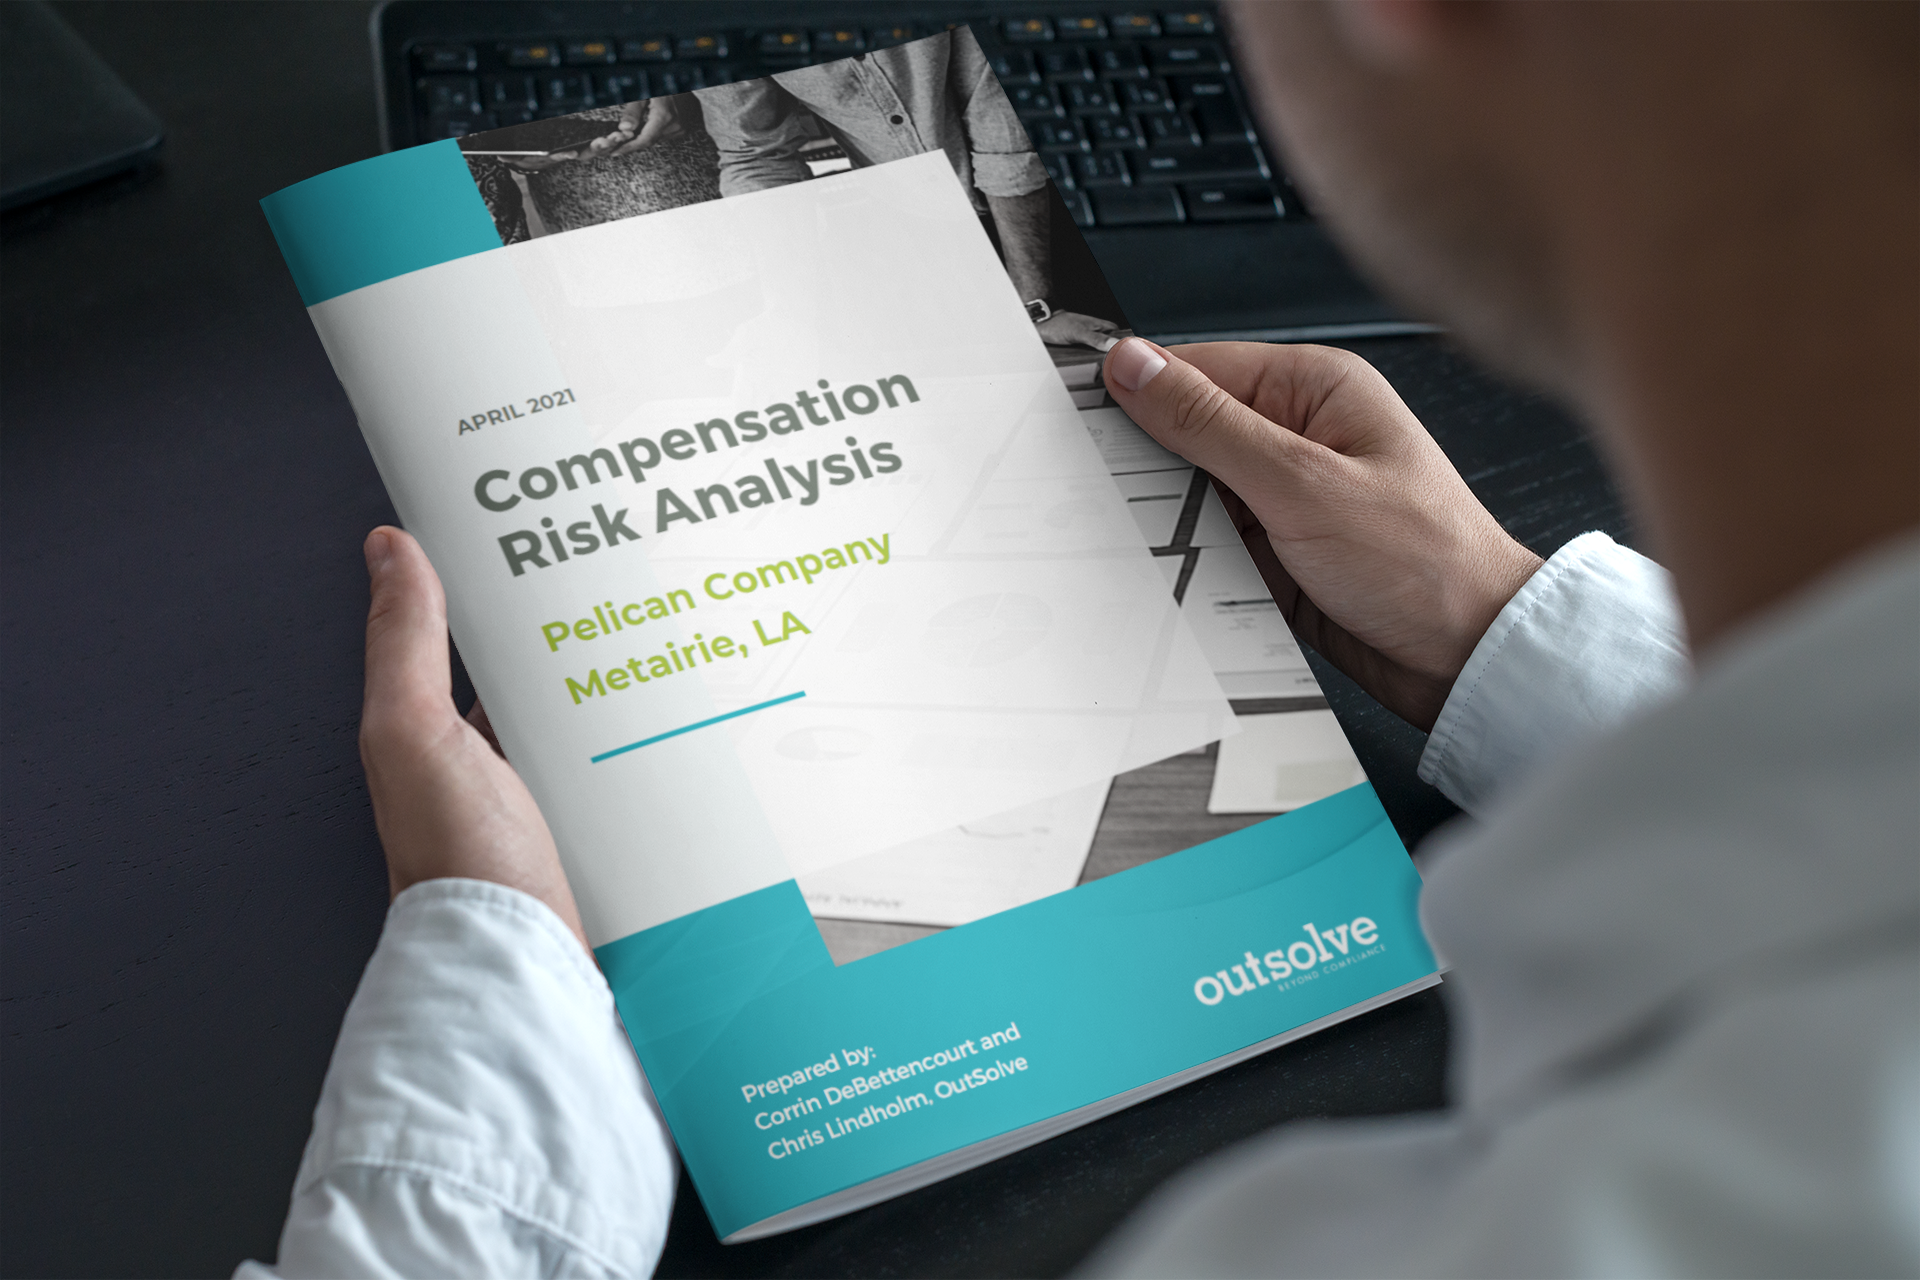 outsolve compensation risk analysis